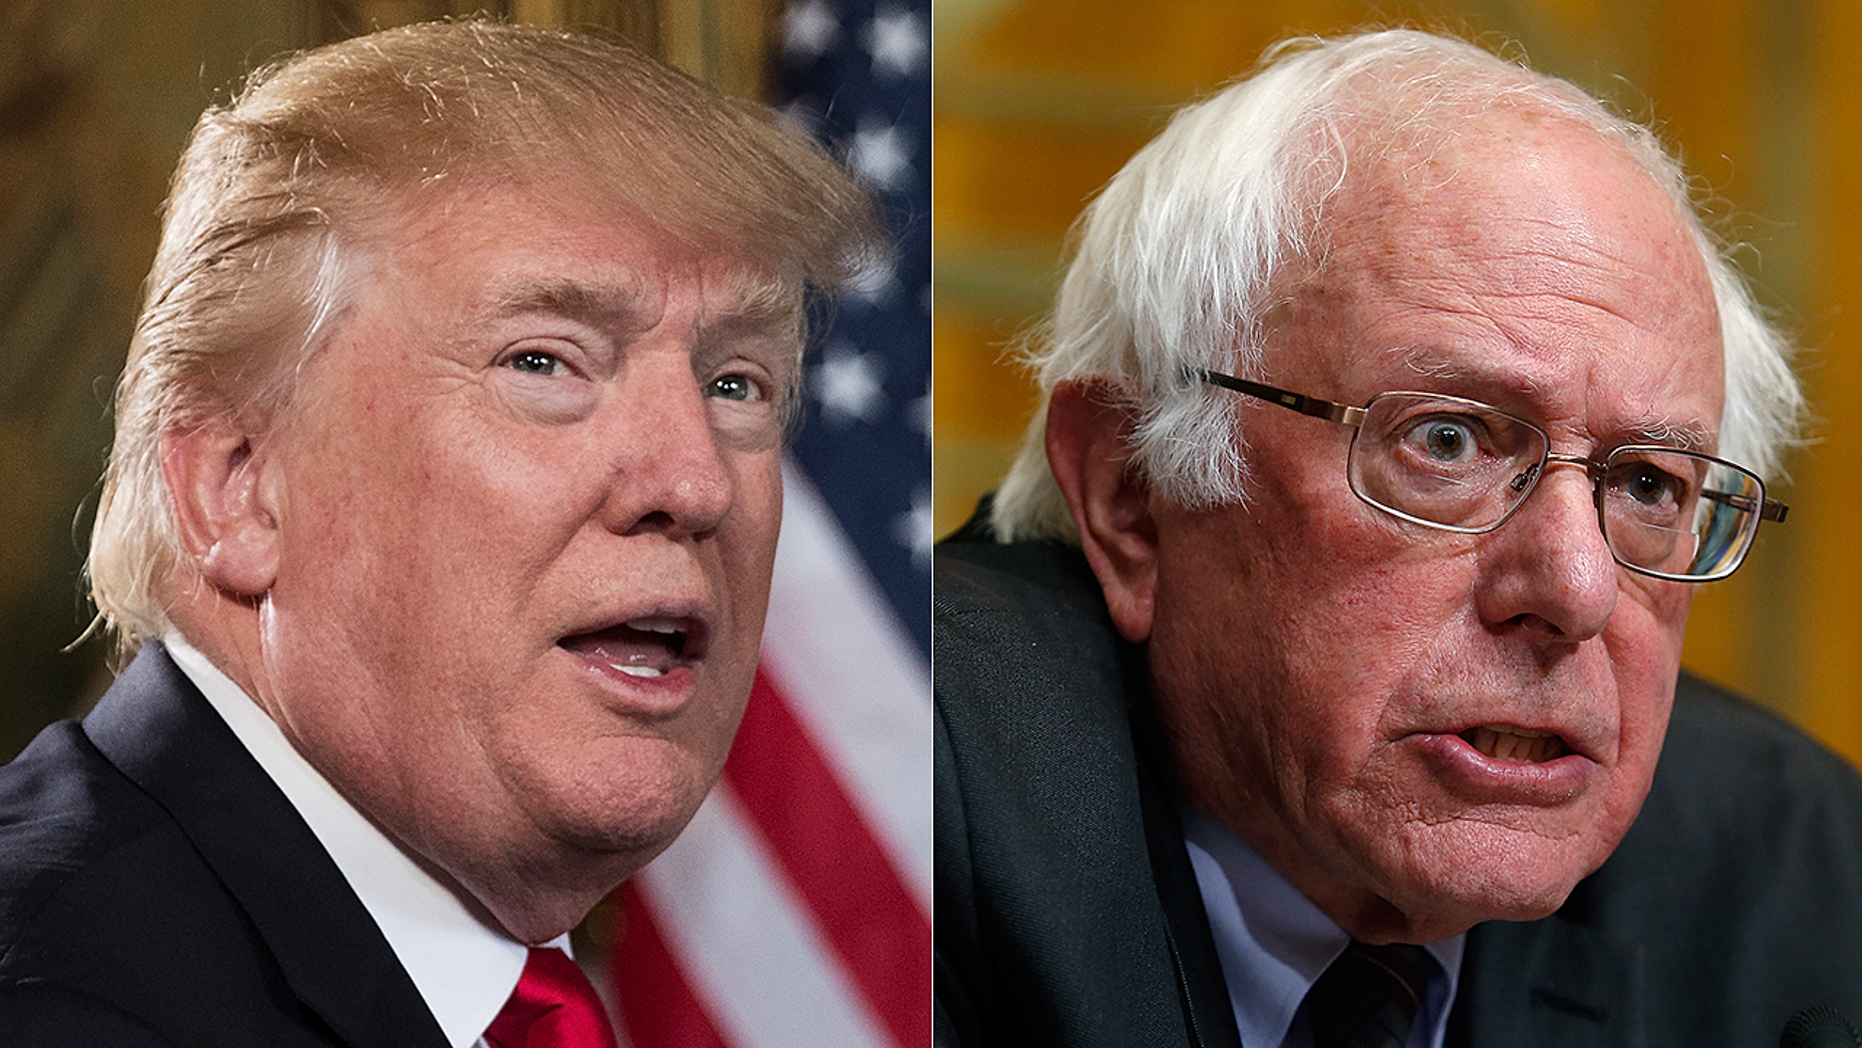 President Donald Trump and U.S. Sen. Bernie Sanders posted broadly differing views of the new U.S. tax law.